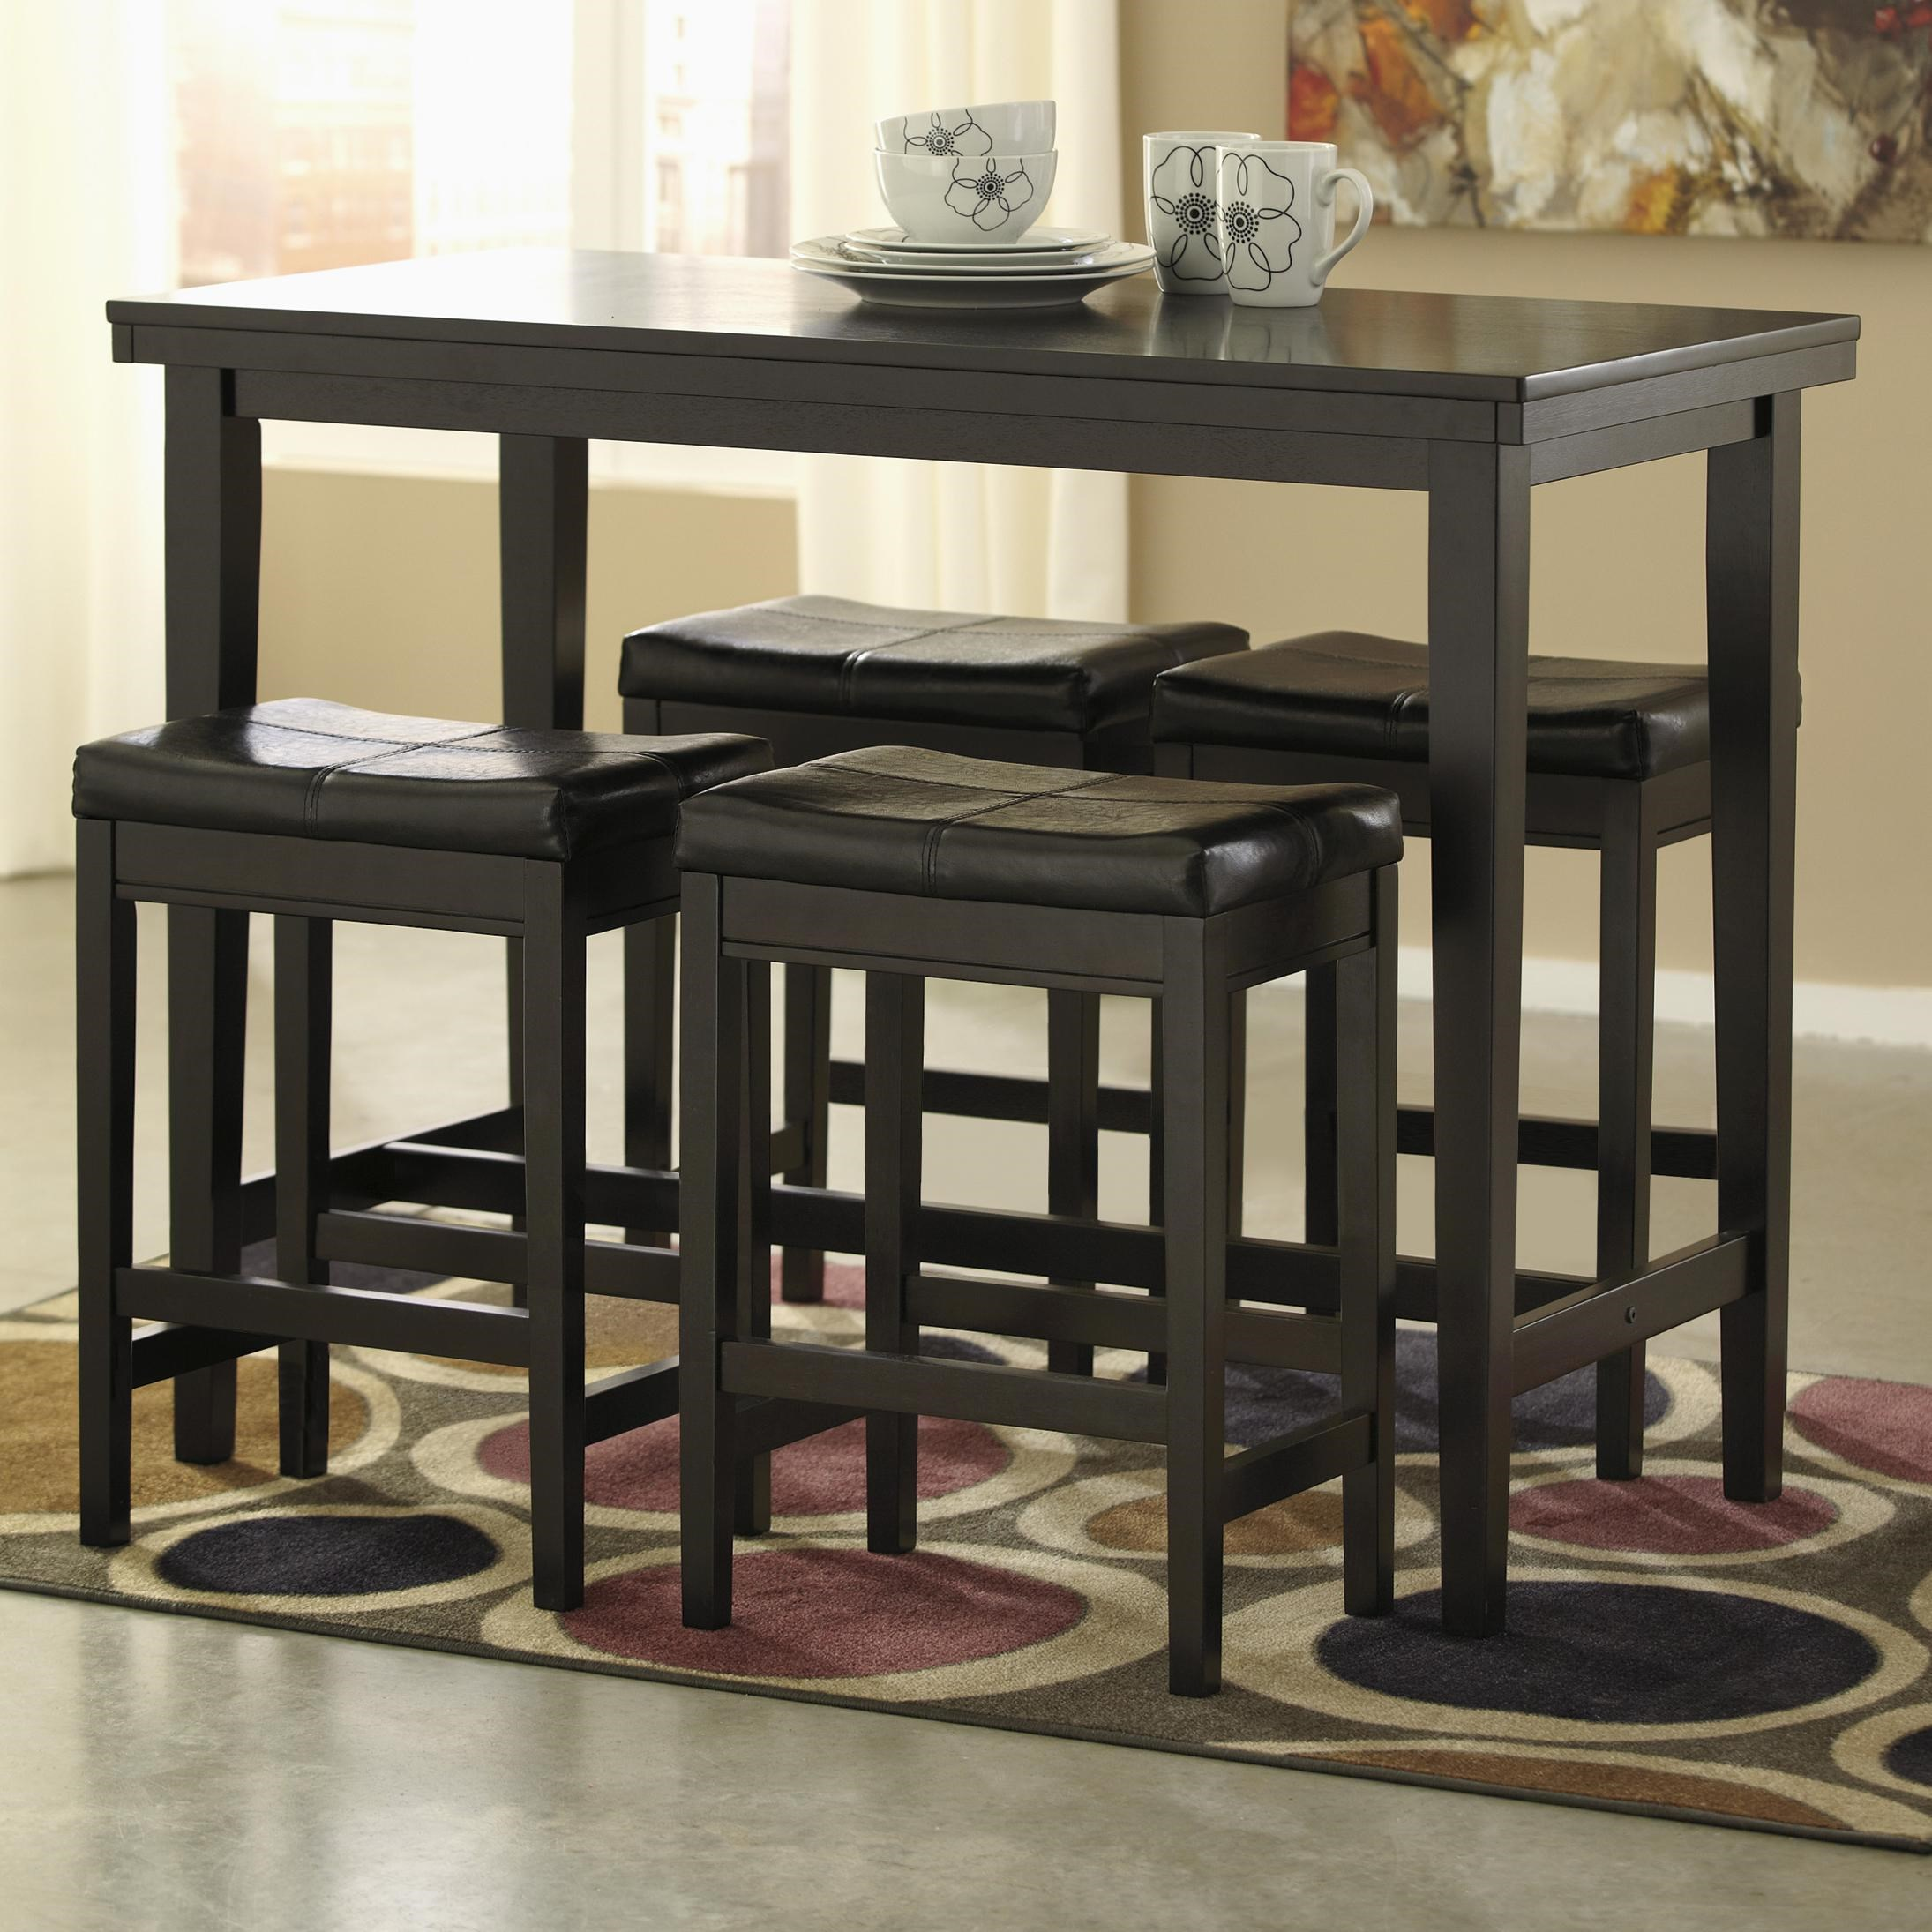 Signature Design by Ashley Kimonte 5-Piece Counter Table Set with Dark Brown Upholstered Stools & Signature Design by Ashley Kimonte 5-Piece Counter Table Set with ...